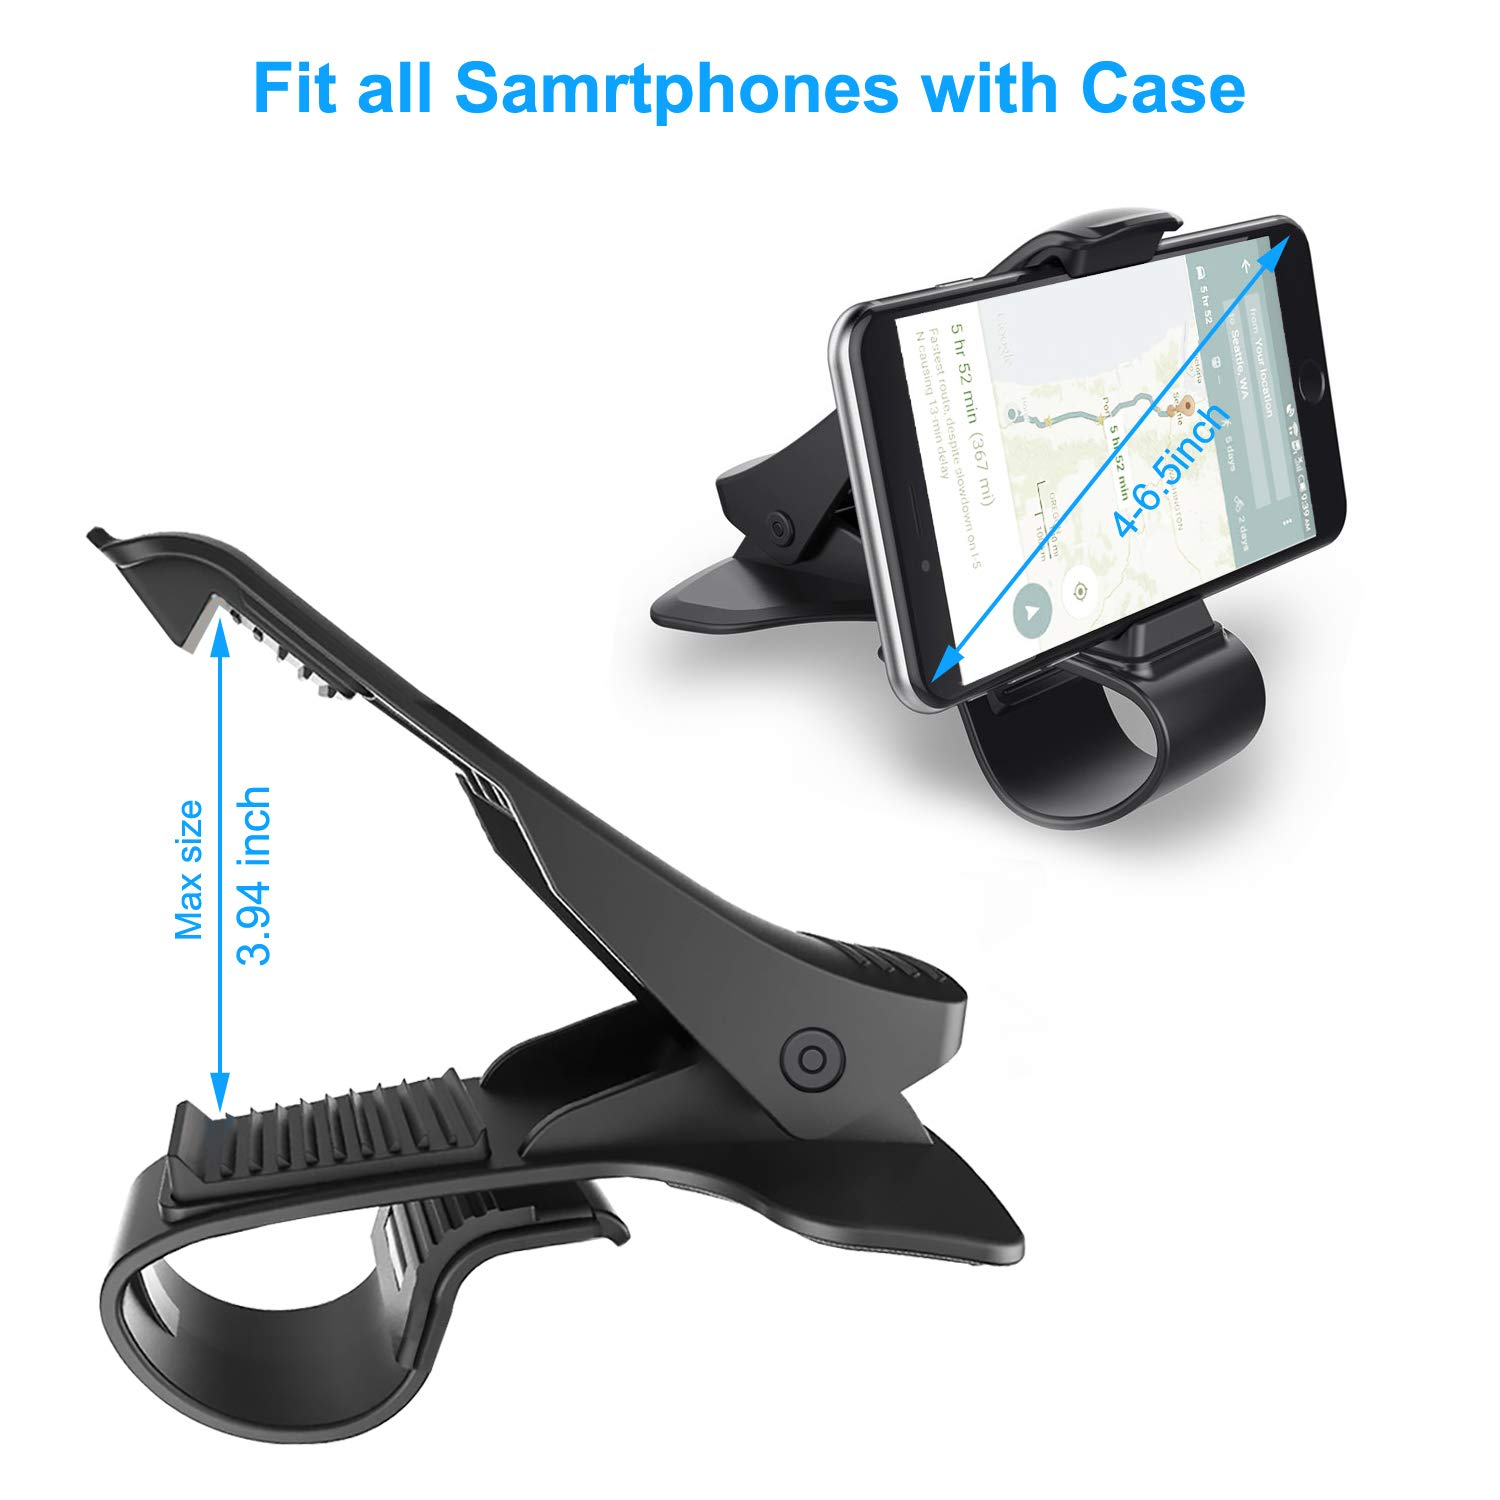 Phone Holder for Car Hzrfun Cell Phone Holder for Car Dashboard Clip Non-Slip Durable Compatible with iPhone Xs Max//XR//XS//X//8 Plus//8//7 Plus//7 Samsung Galaxy S10//S9//S8 and More